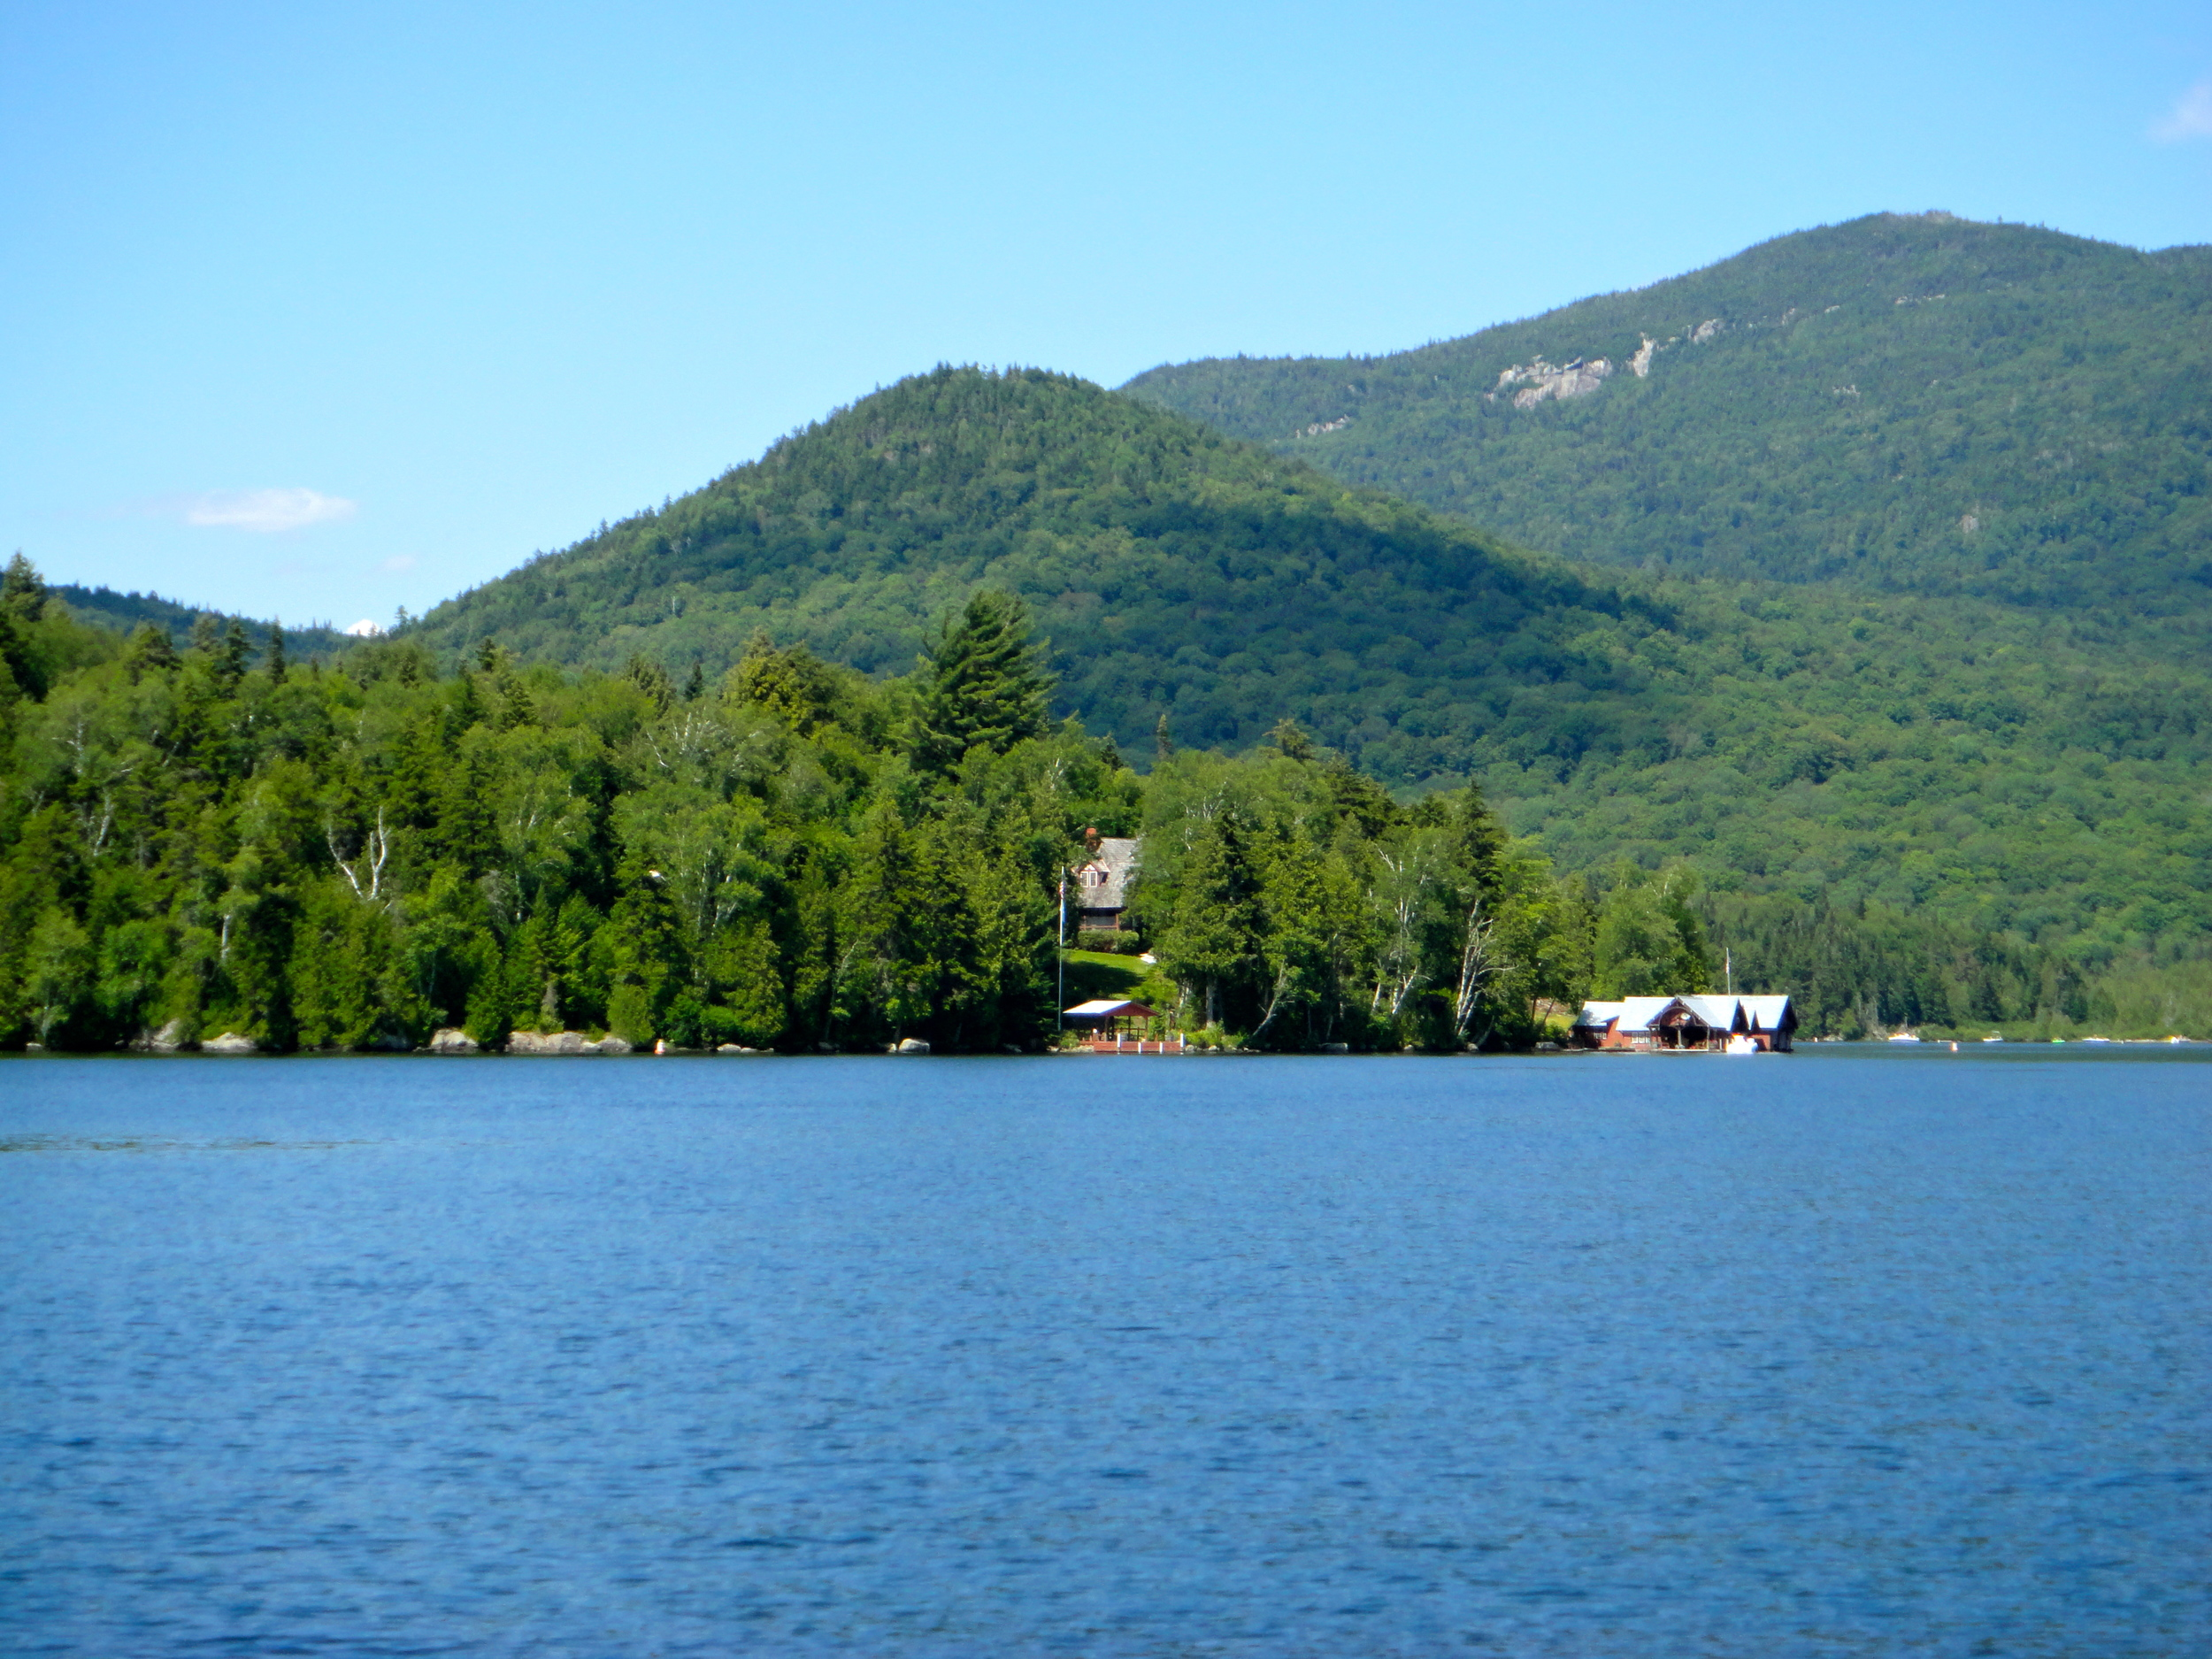 Another view of Hawk Island